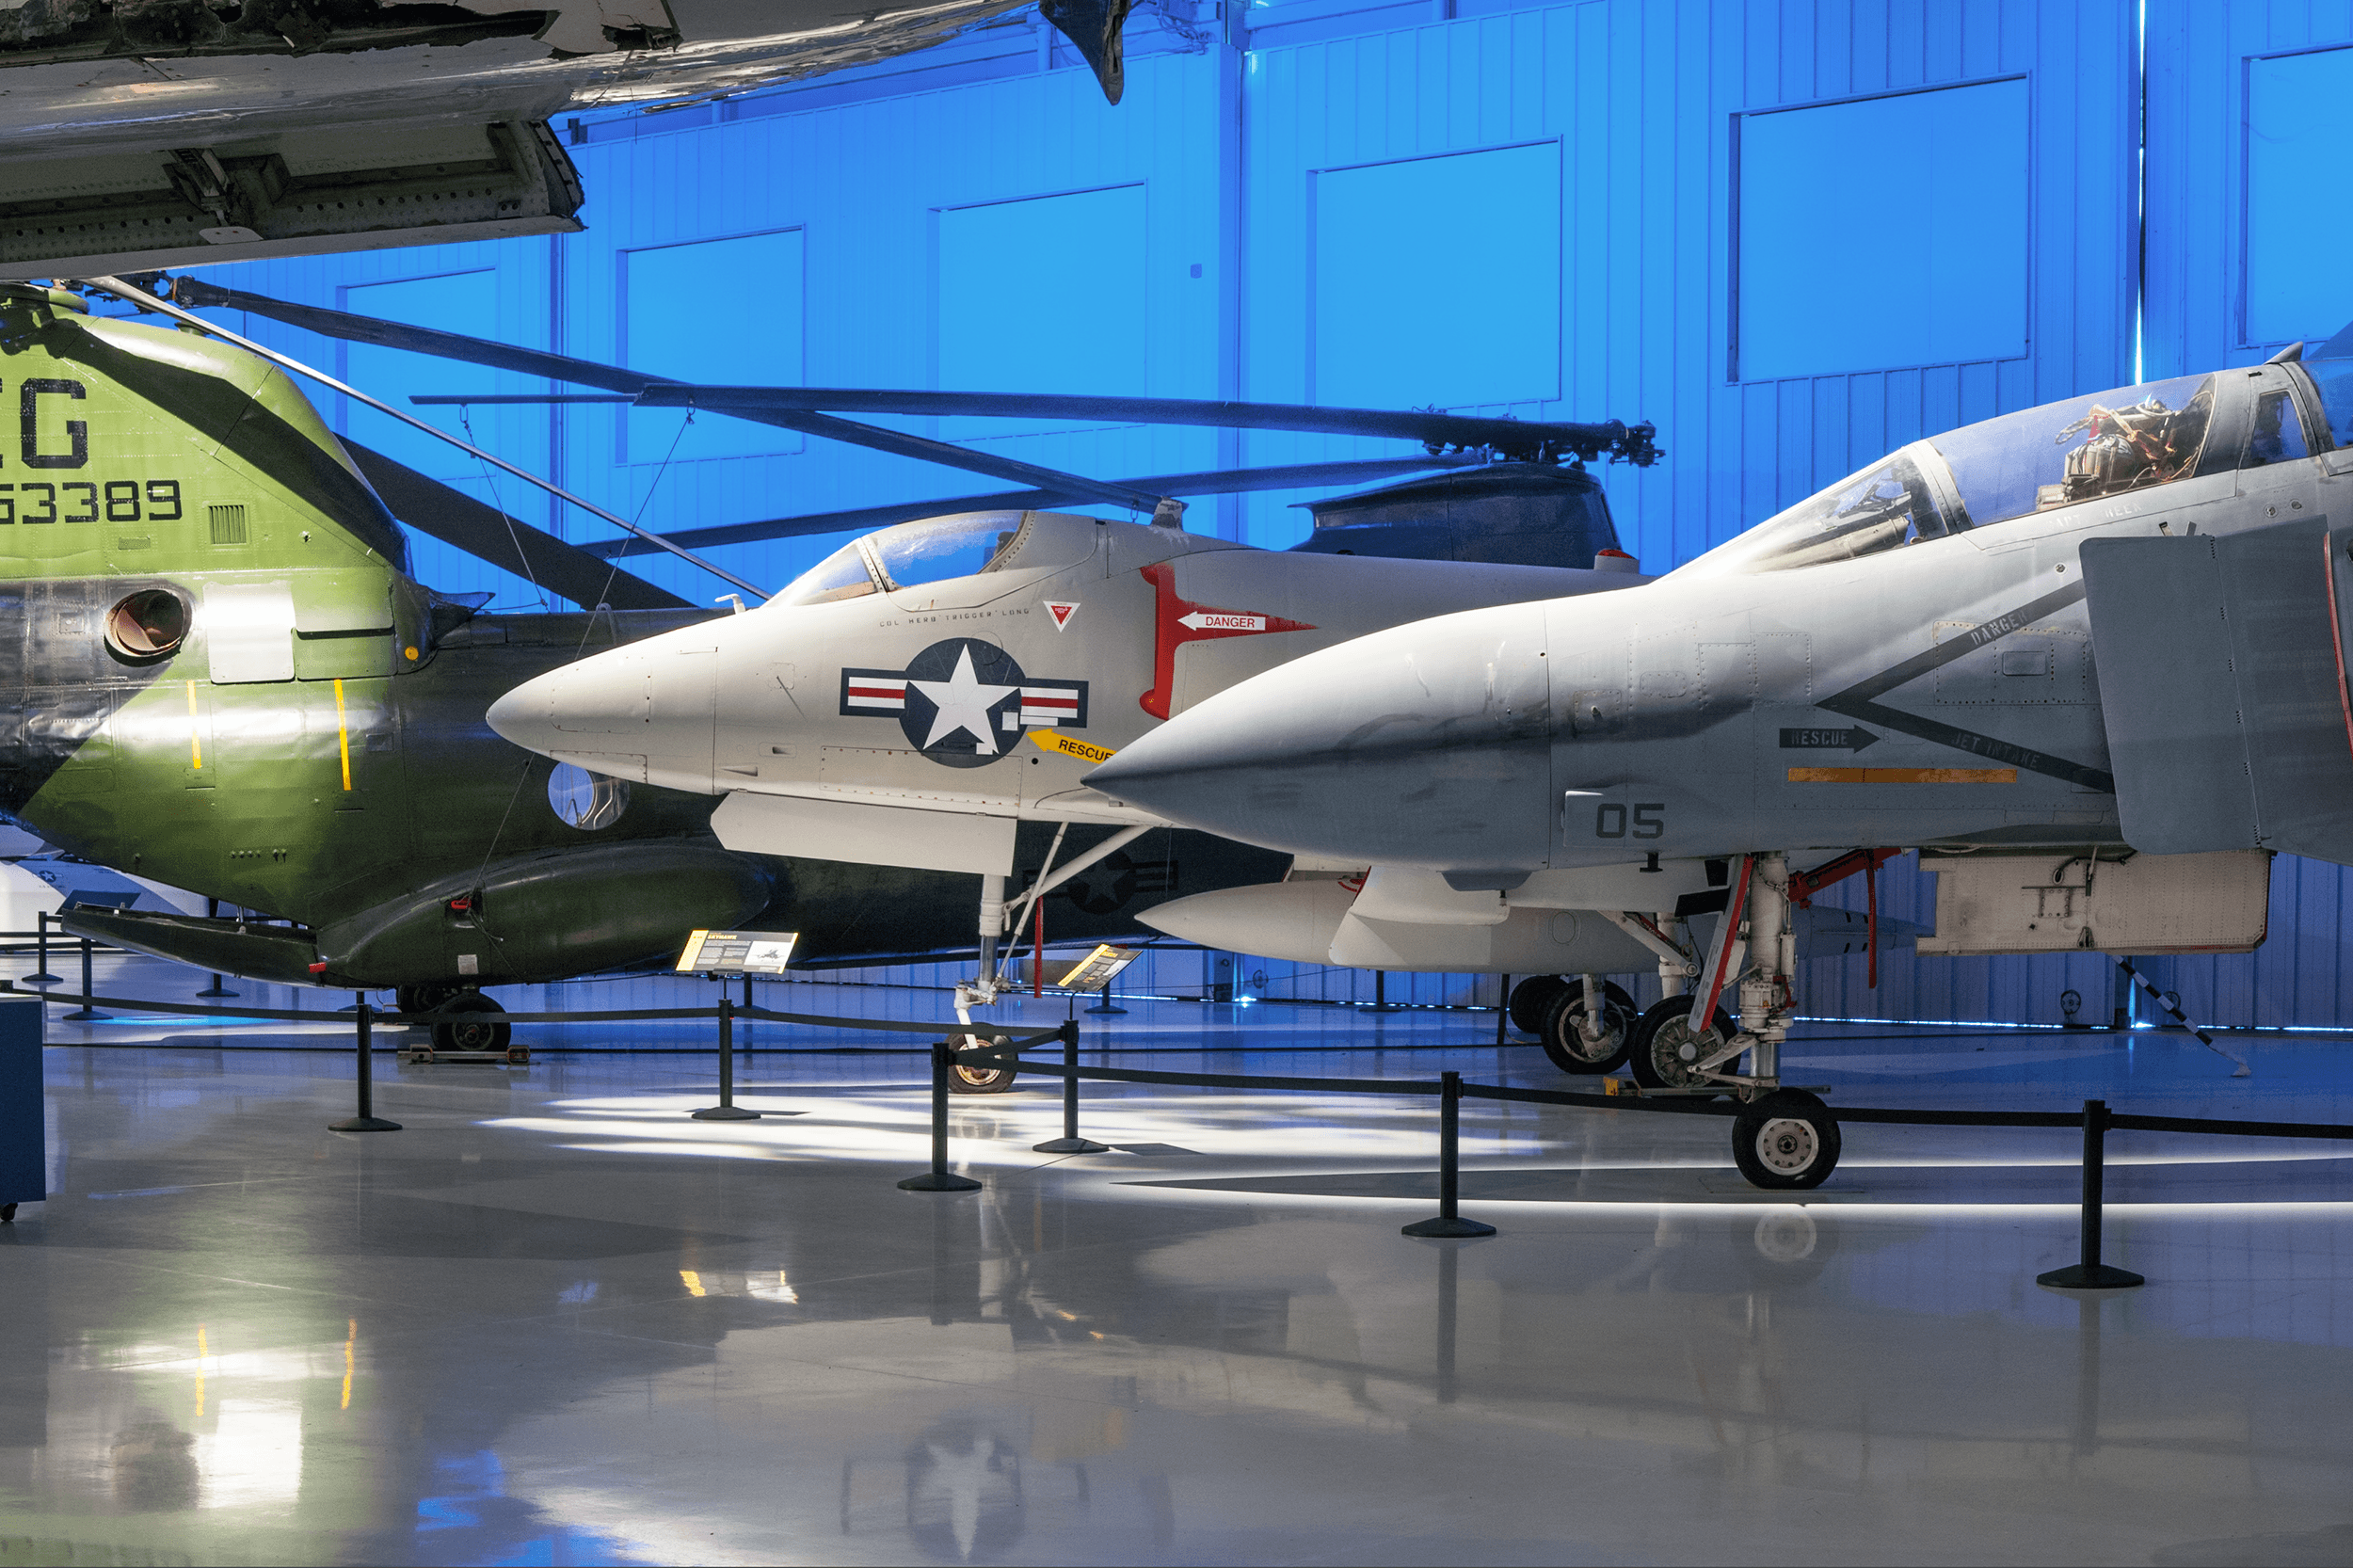 The F-4 Phantom II ( right ) was initially designed in the late 1950s as an attack plane for the new aircraft carriers. The F-4 was fast, flying up to Mach 2.2 and could carry up to 18,650 pounds of missiles and bombs. The A-4 Skyhawk ( middle ) was a subsonic, lightweight aircraft that could operate from existing WWII-sized aircraft carriers. The Boeing CH-46 Sea Knight ( left ) first entered service in 1962 and was deployed throughout the Vietnam War by transporting soldiers into inaccessible areas, often behind enemy lines.